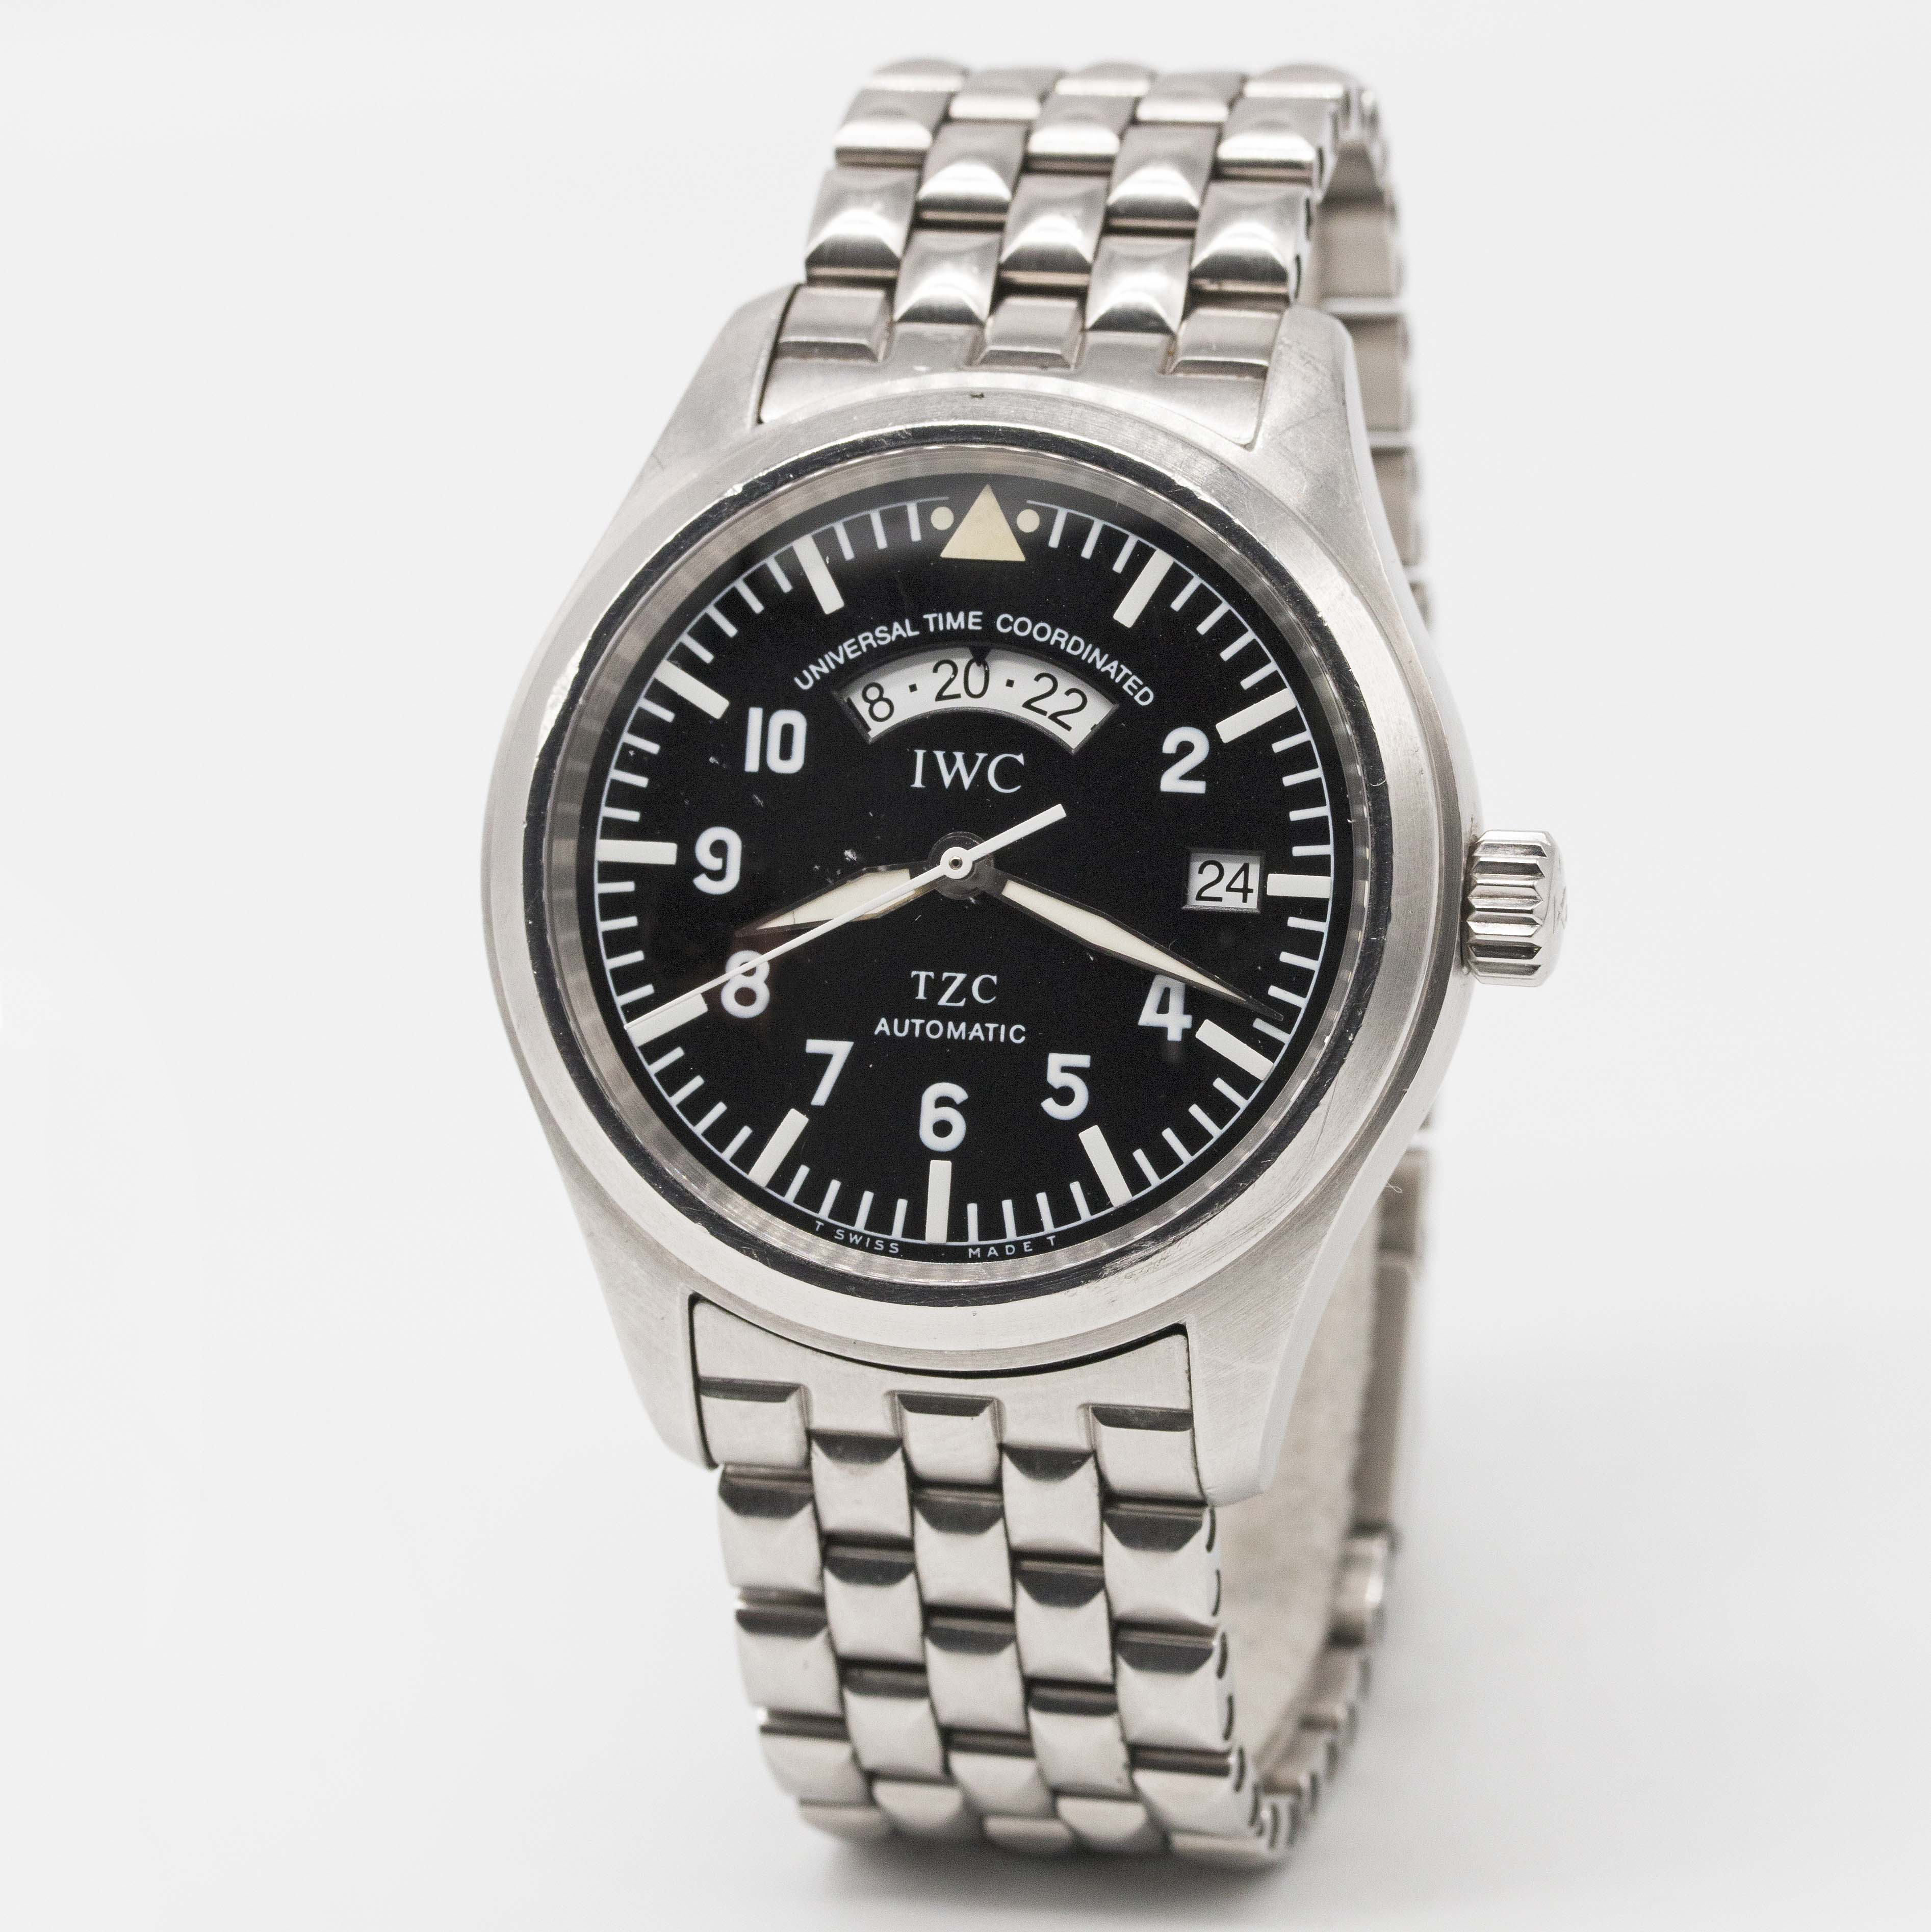 Lot 88 - A GENTLEMAN'S STAINLESS STEEL IWC UTC DUAL TIME TZC AUTOMATIC PILOTS BRACELET WATCH DATED 2001, REF.